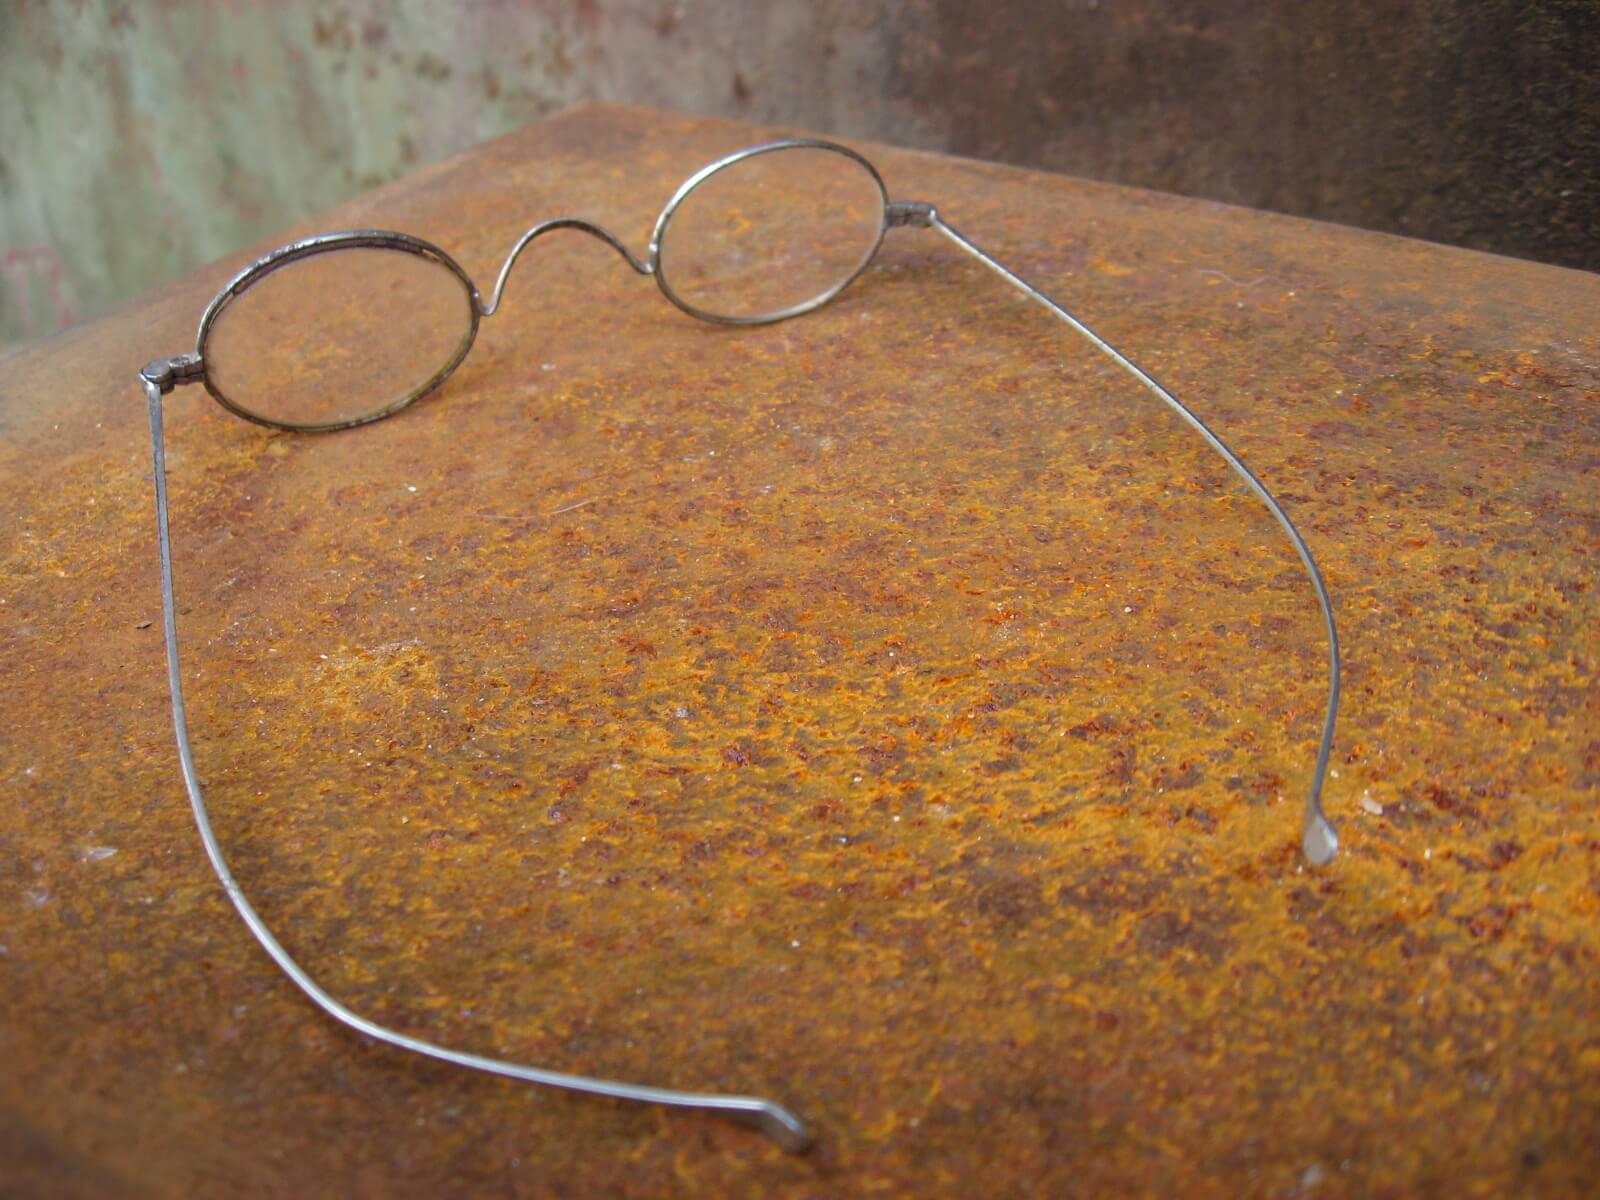 late 1800s victorian civil war French oval _eyeglasses_E_PumpjackPiddlewick